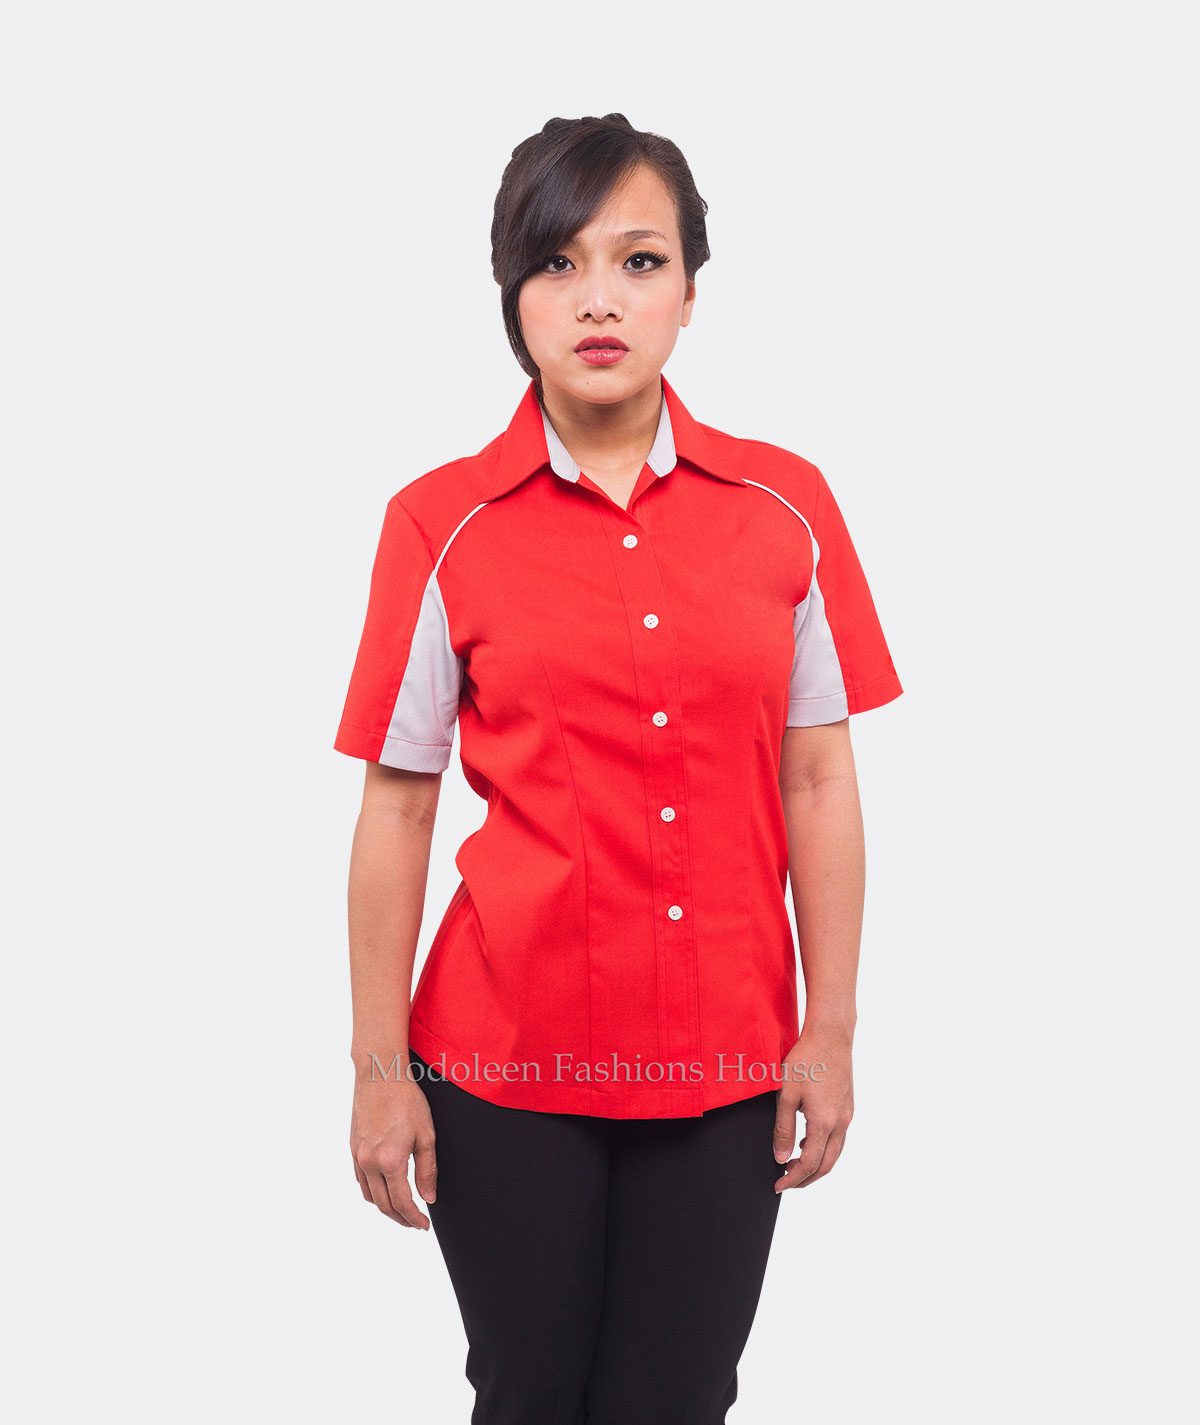 Automobile Sales Representative Customer Service uniform